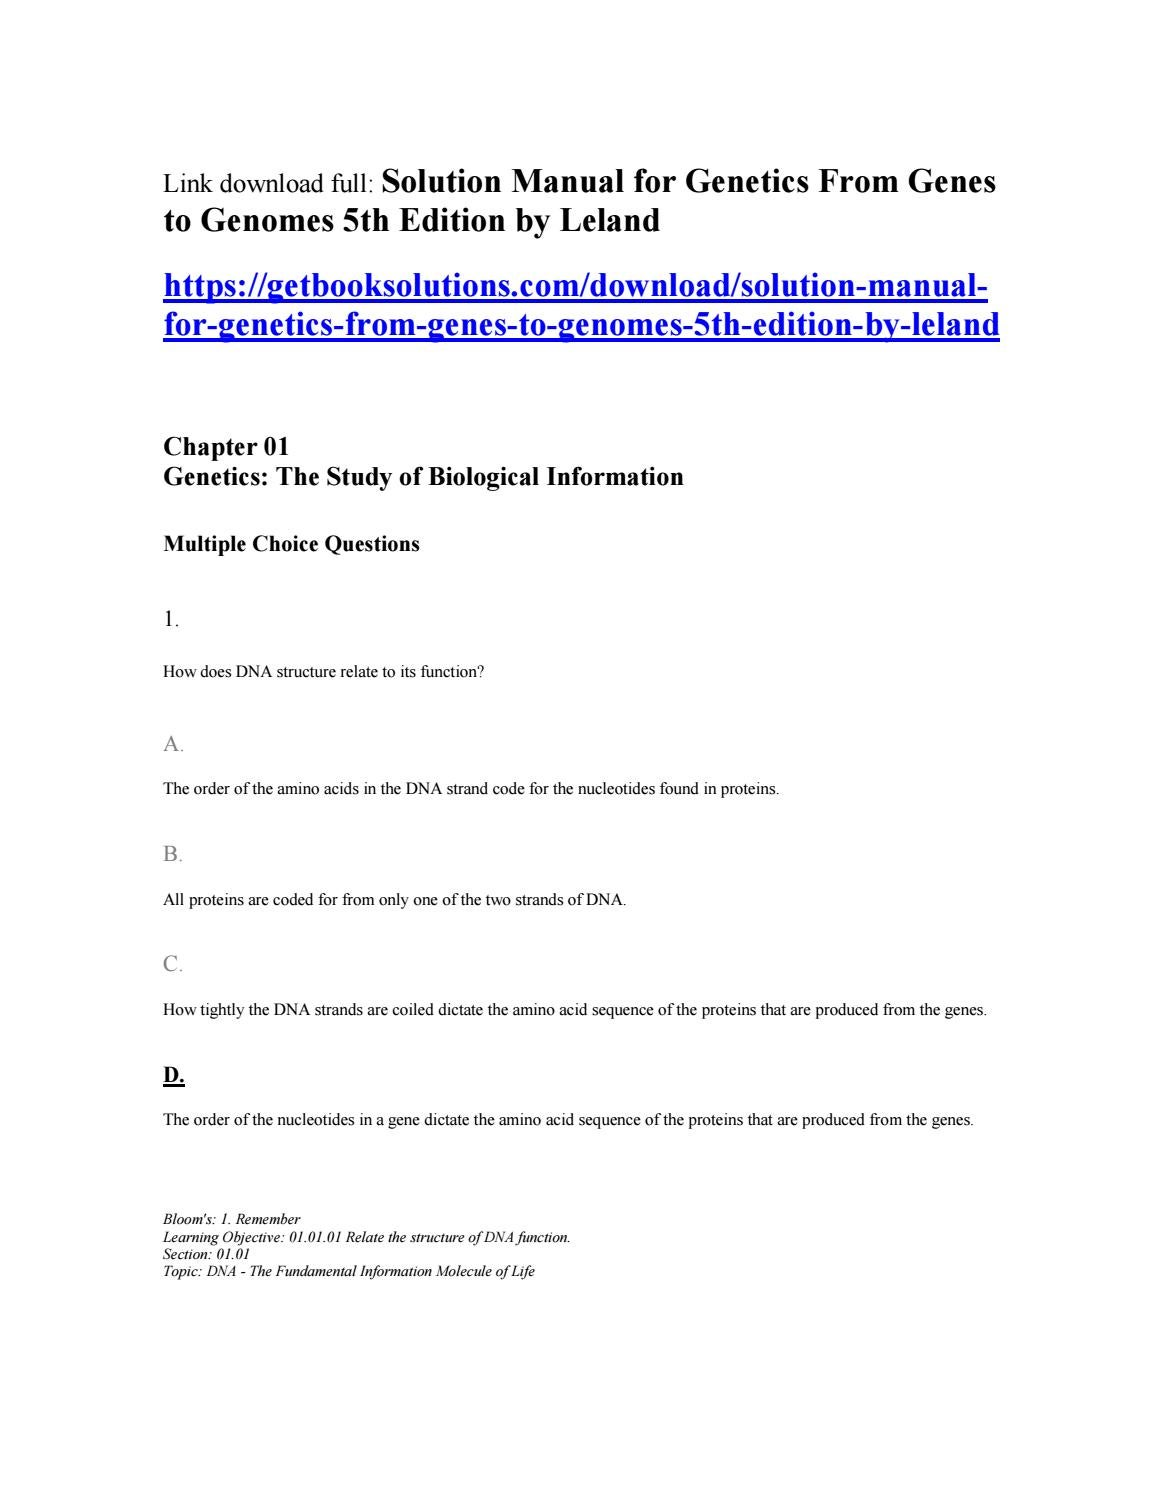 Solution manual for genetics from genes to genomes 5th edition by leland by  Emily - issuu